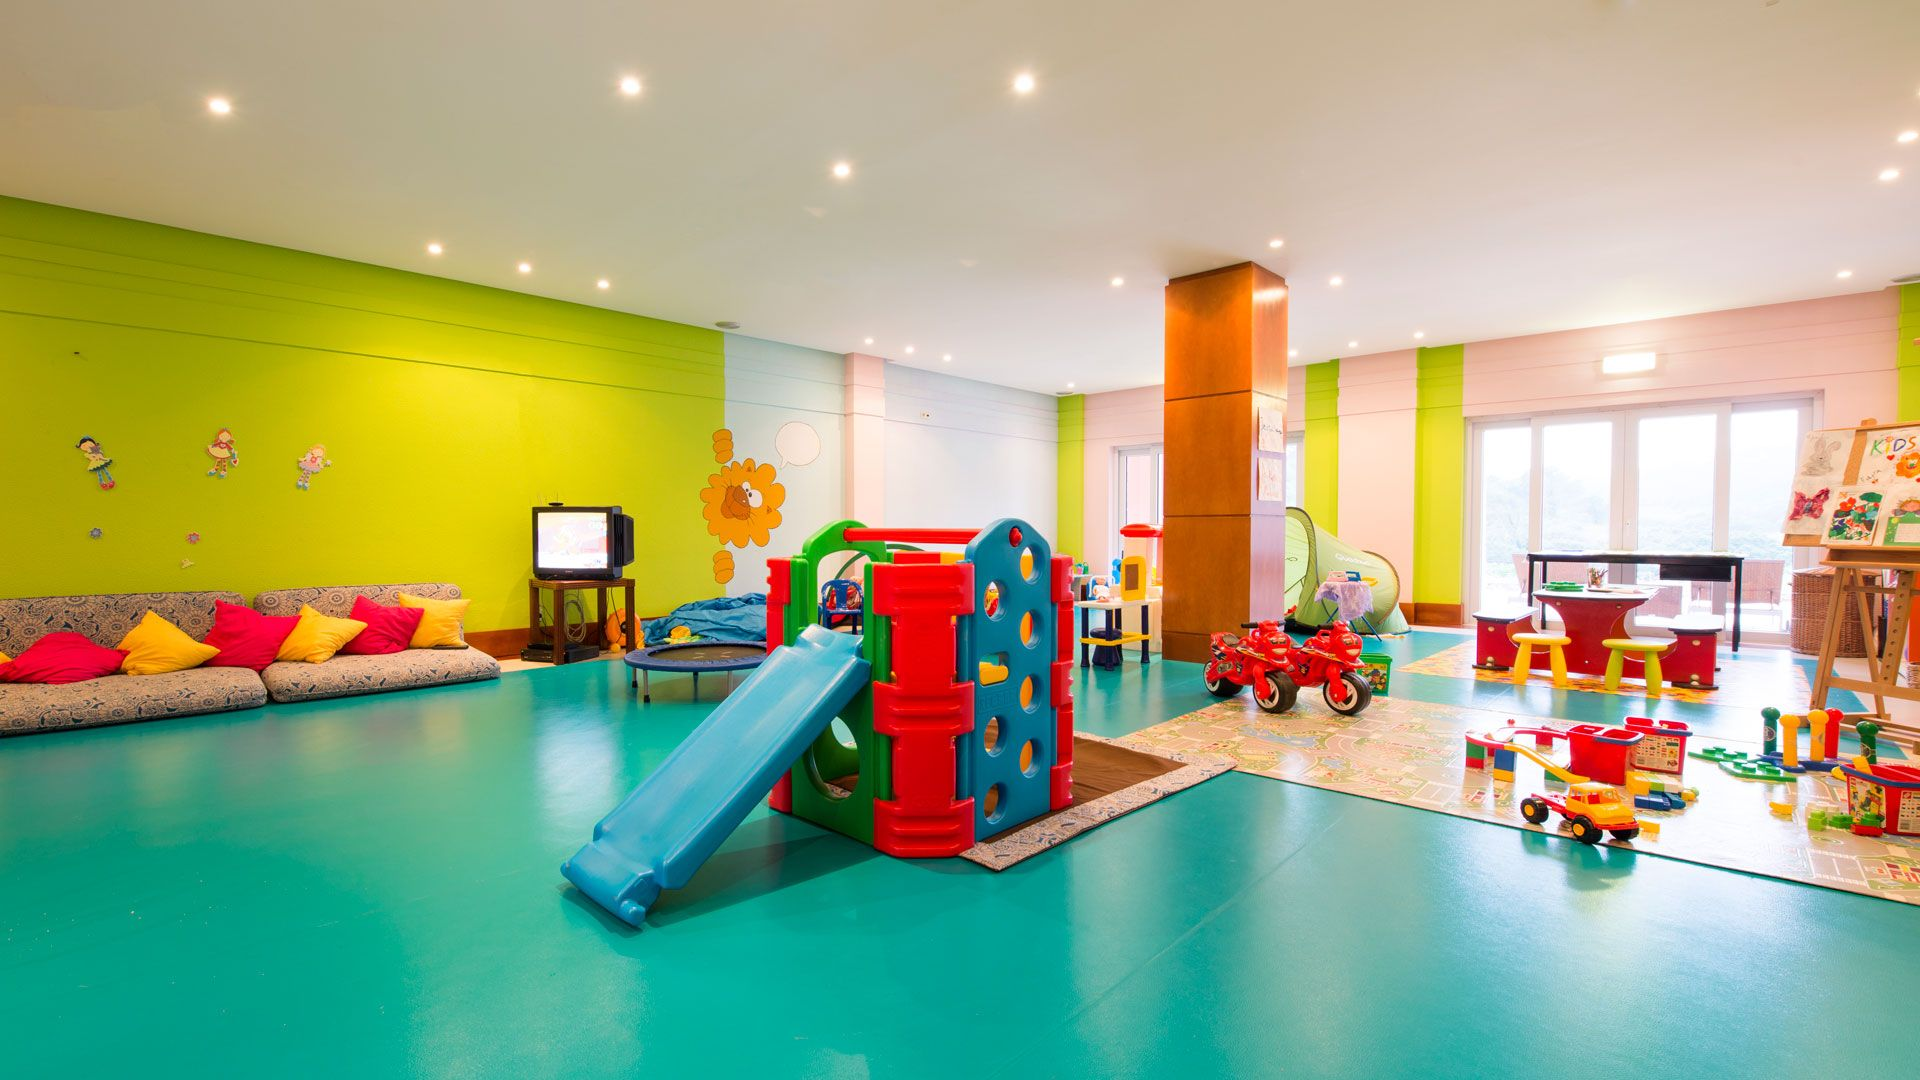 Playing house diy kid - Children Indoor Playground Indoor Play For Toddlers Bay Area Kids Indoor Playground Kid Playing Room